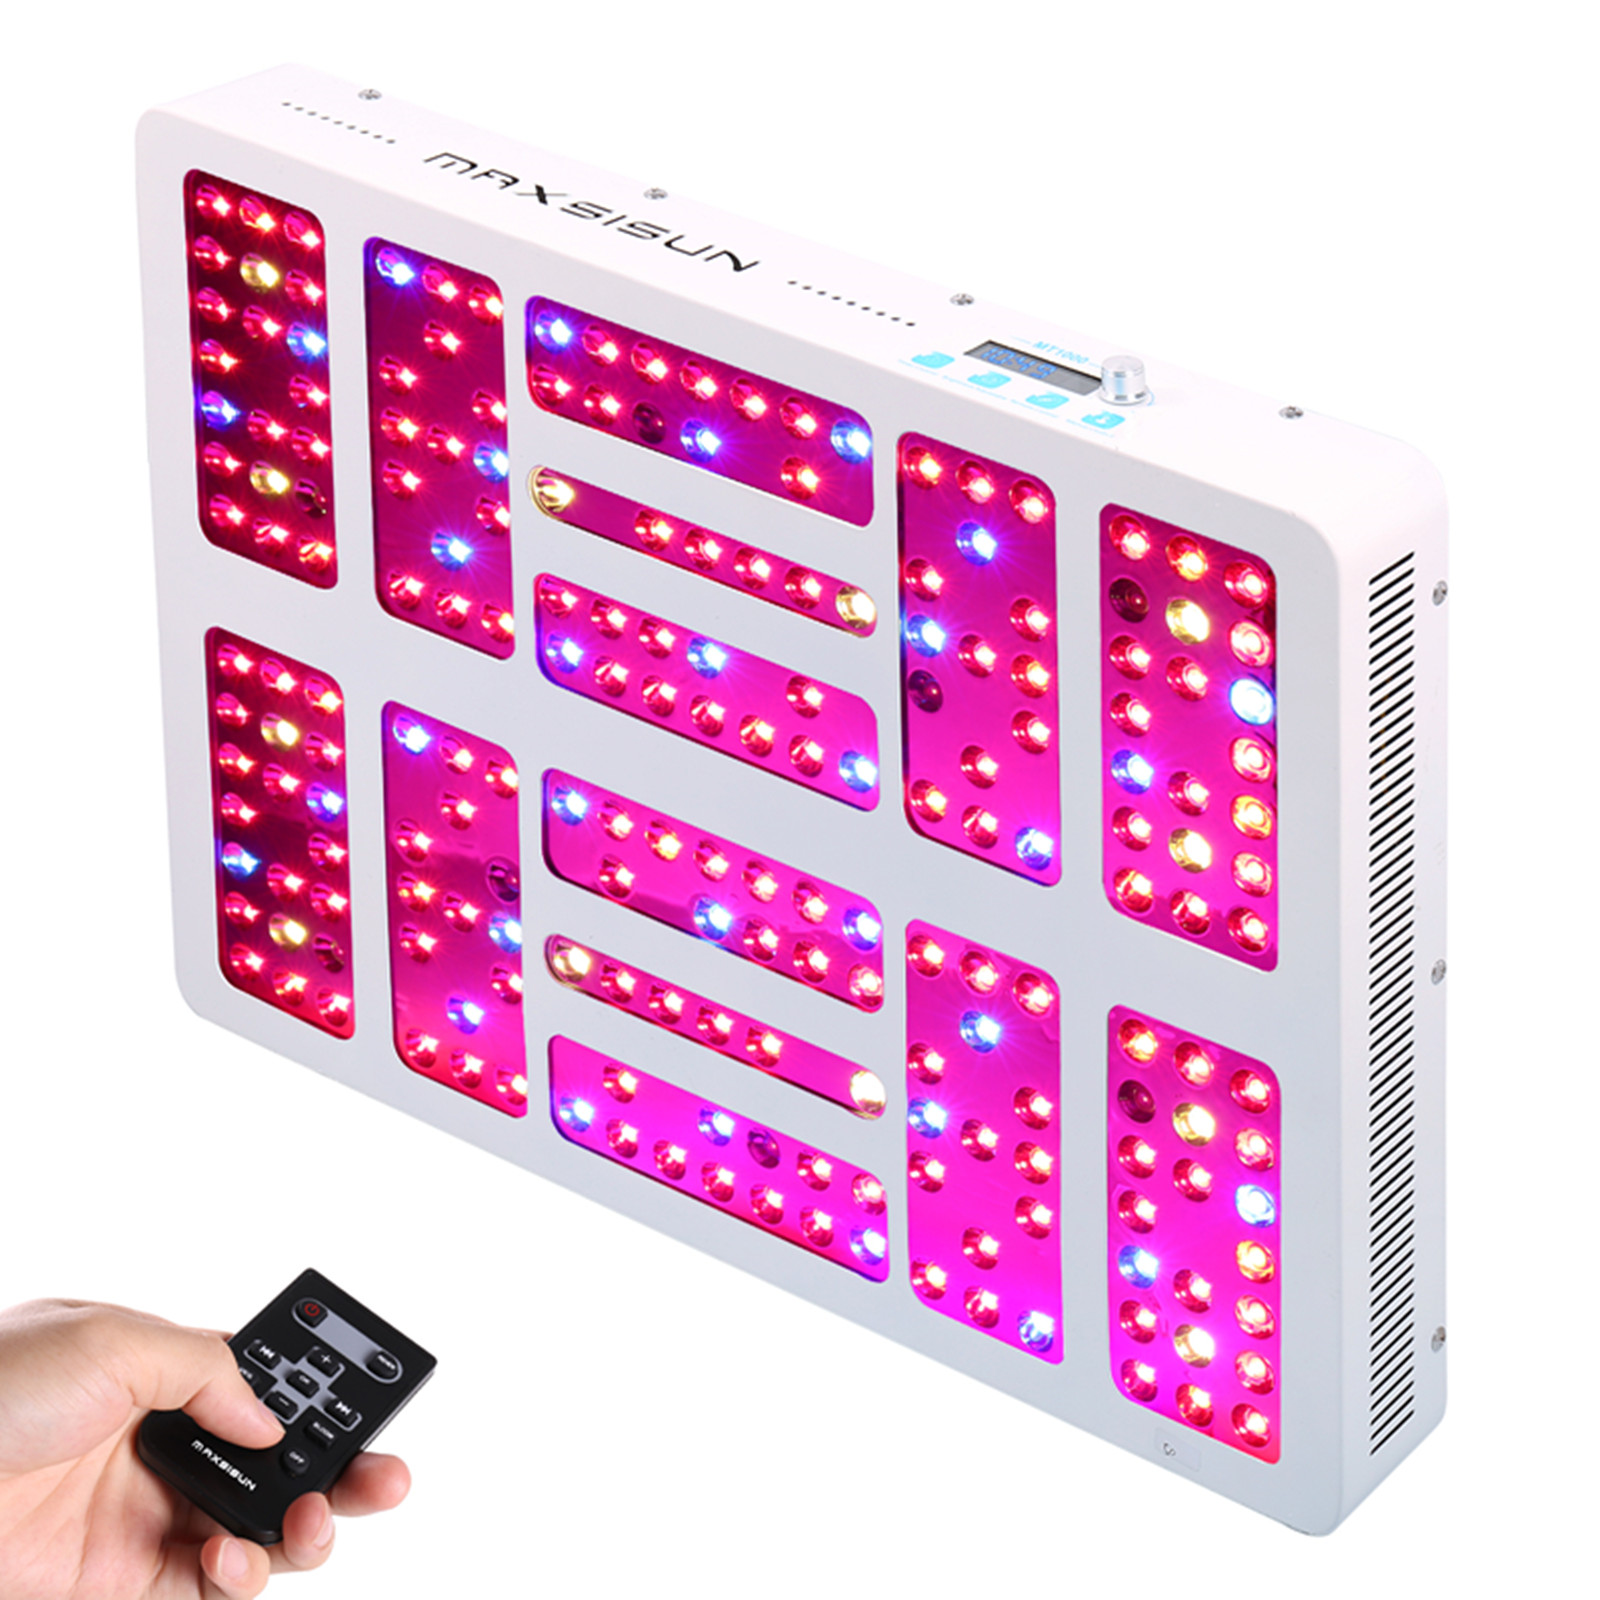 Details about MAXSISUN Timer Control 1000W LED Grow Light Panel for Indoor  Hydro Veg Flowering